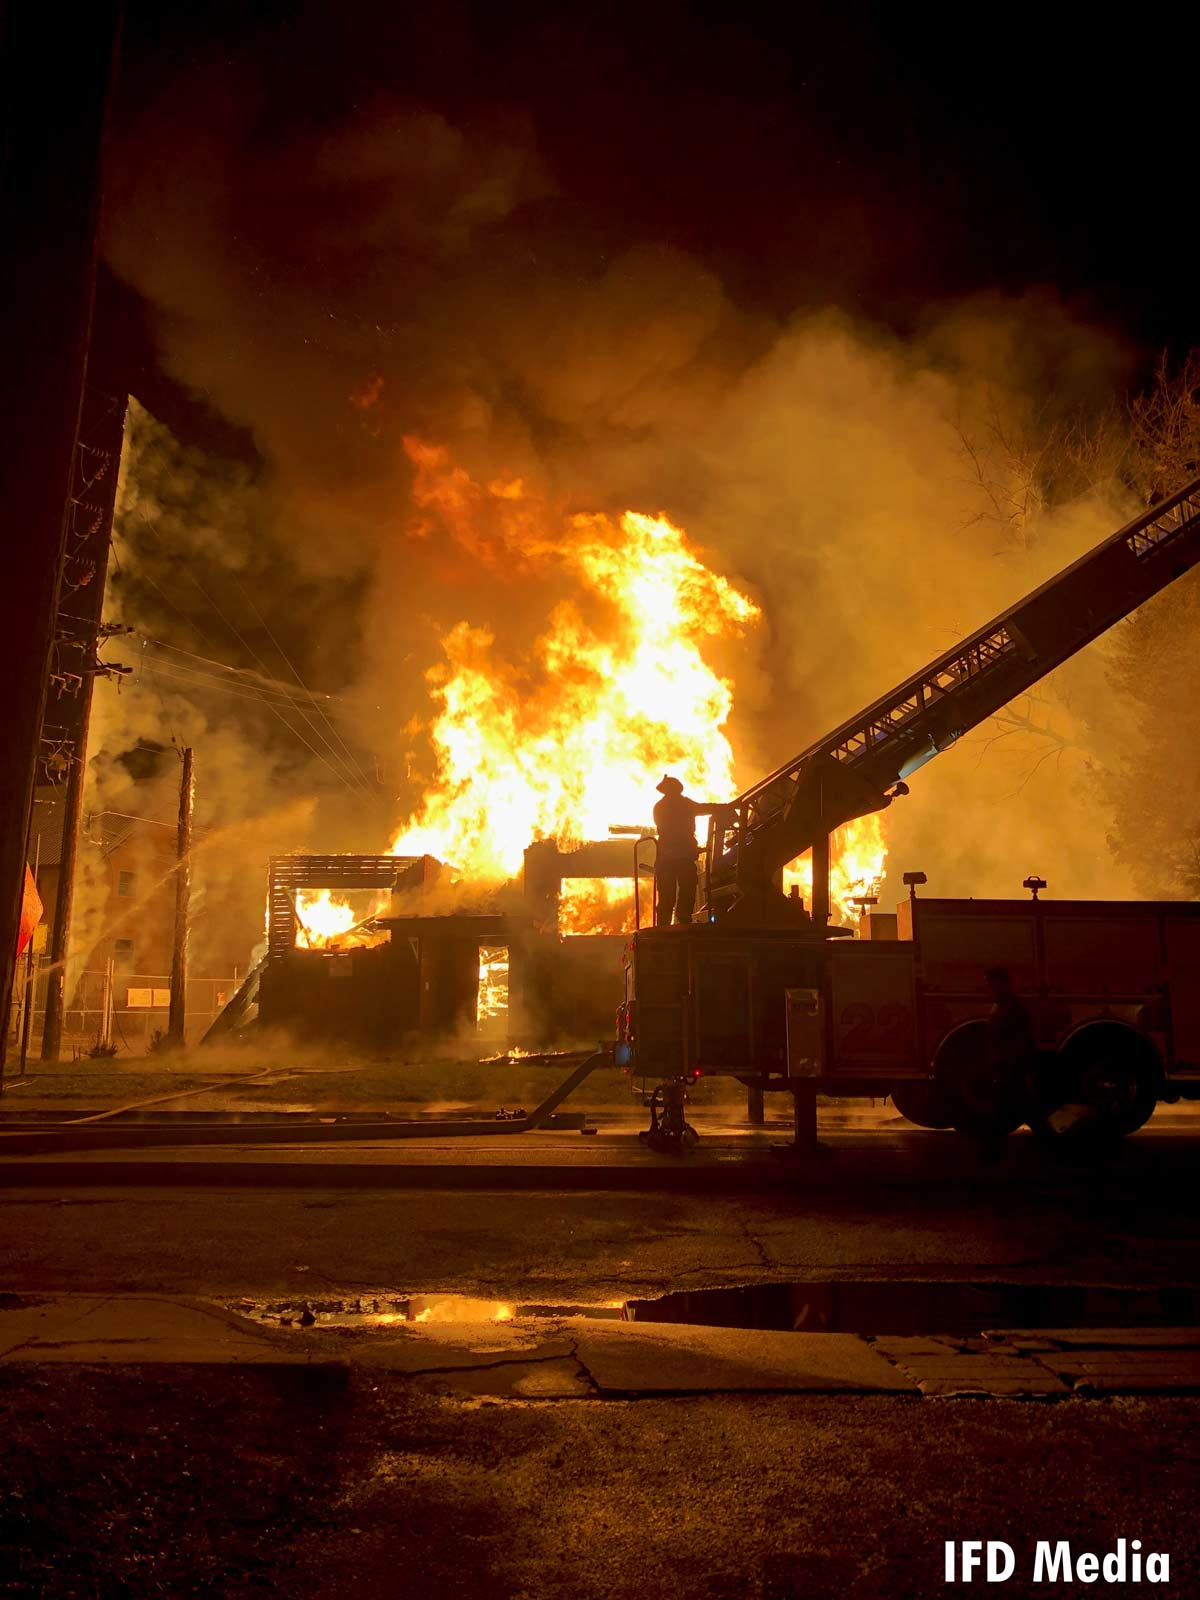 Flames rip through a building in Indianapolis